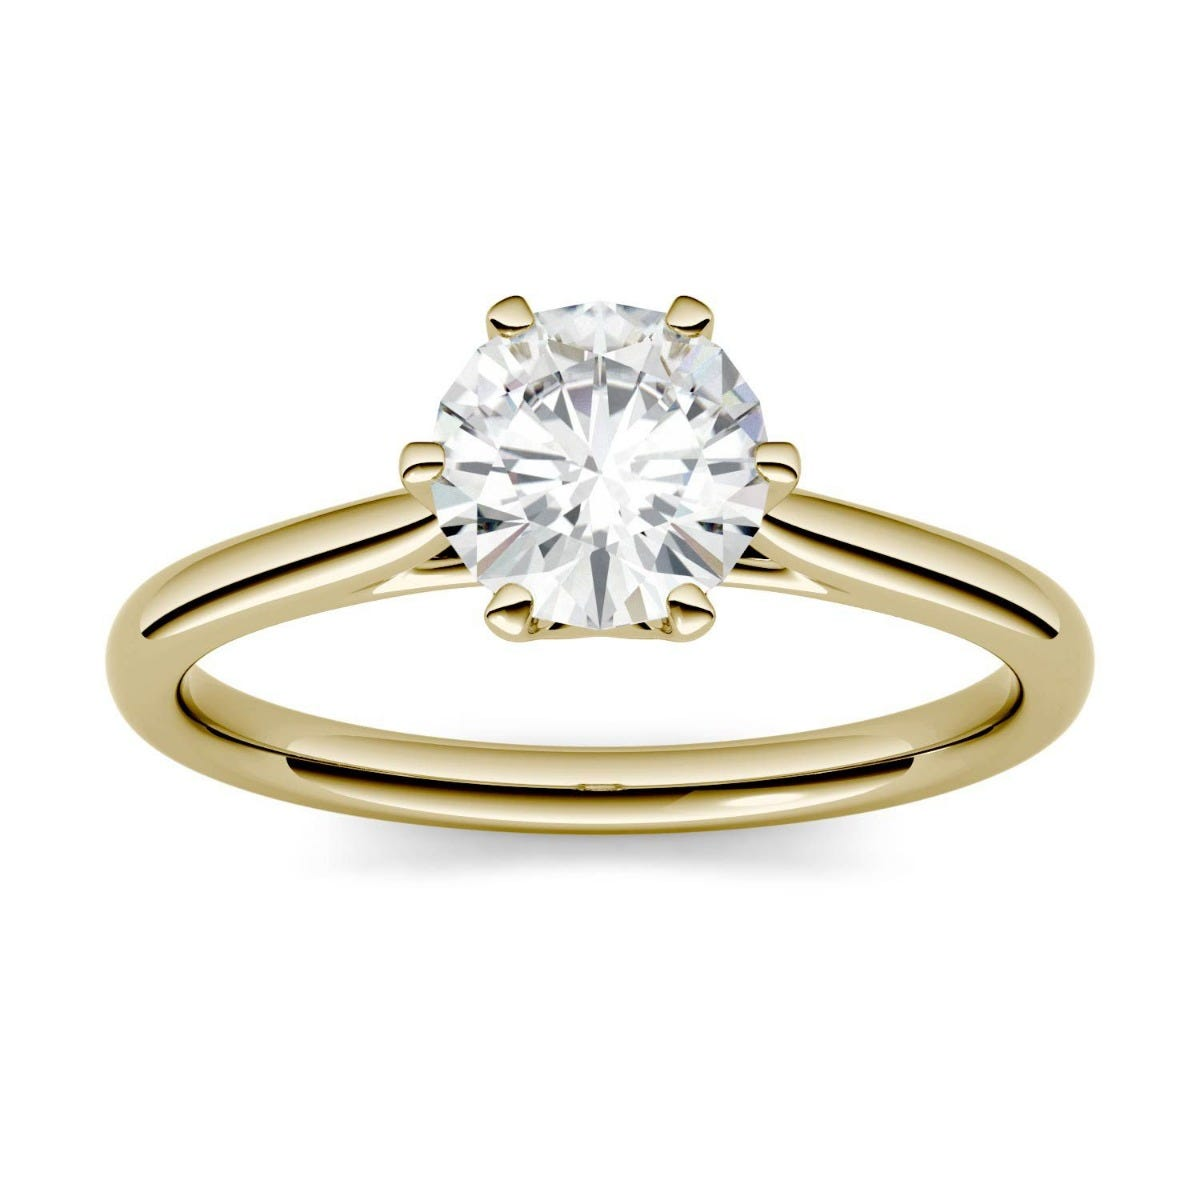 Forever One Round Colorless Moissanite Six Prong Solitaire Engagement Ring in 14K Yellow Gold